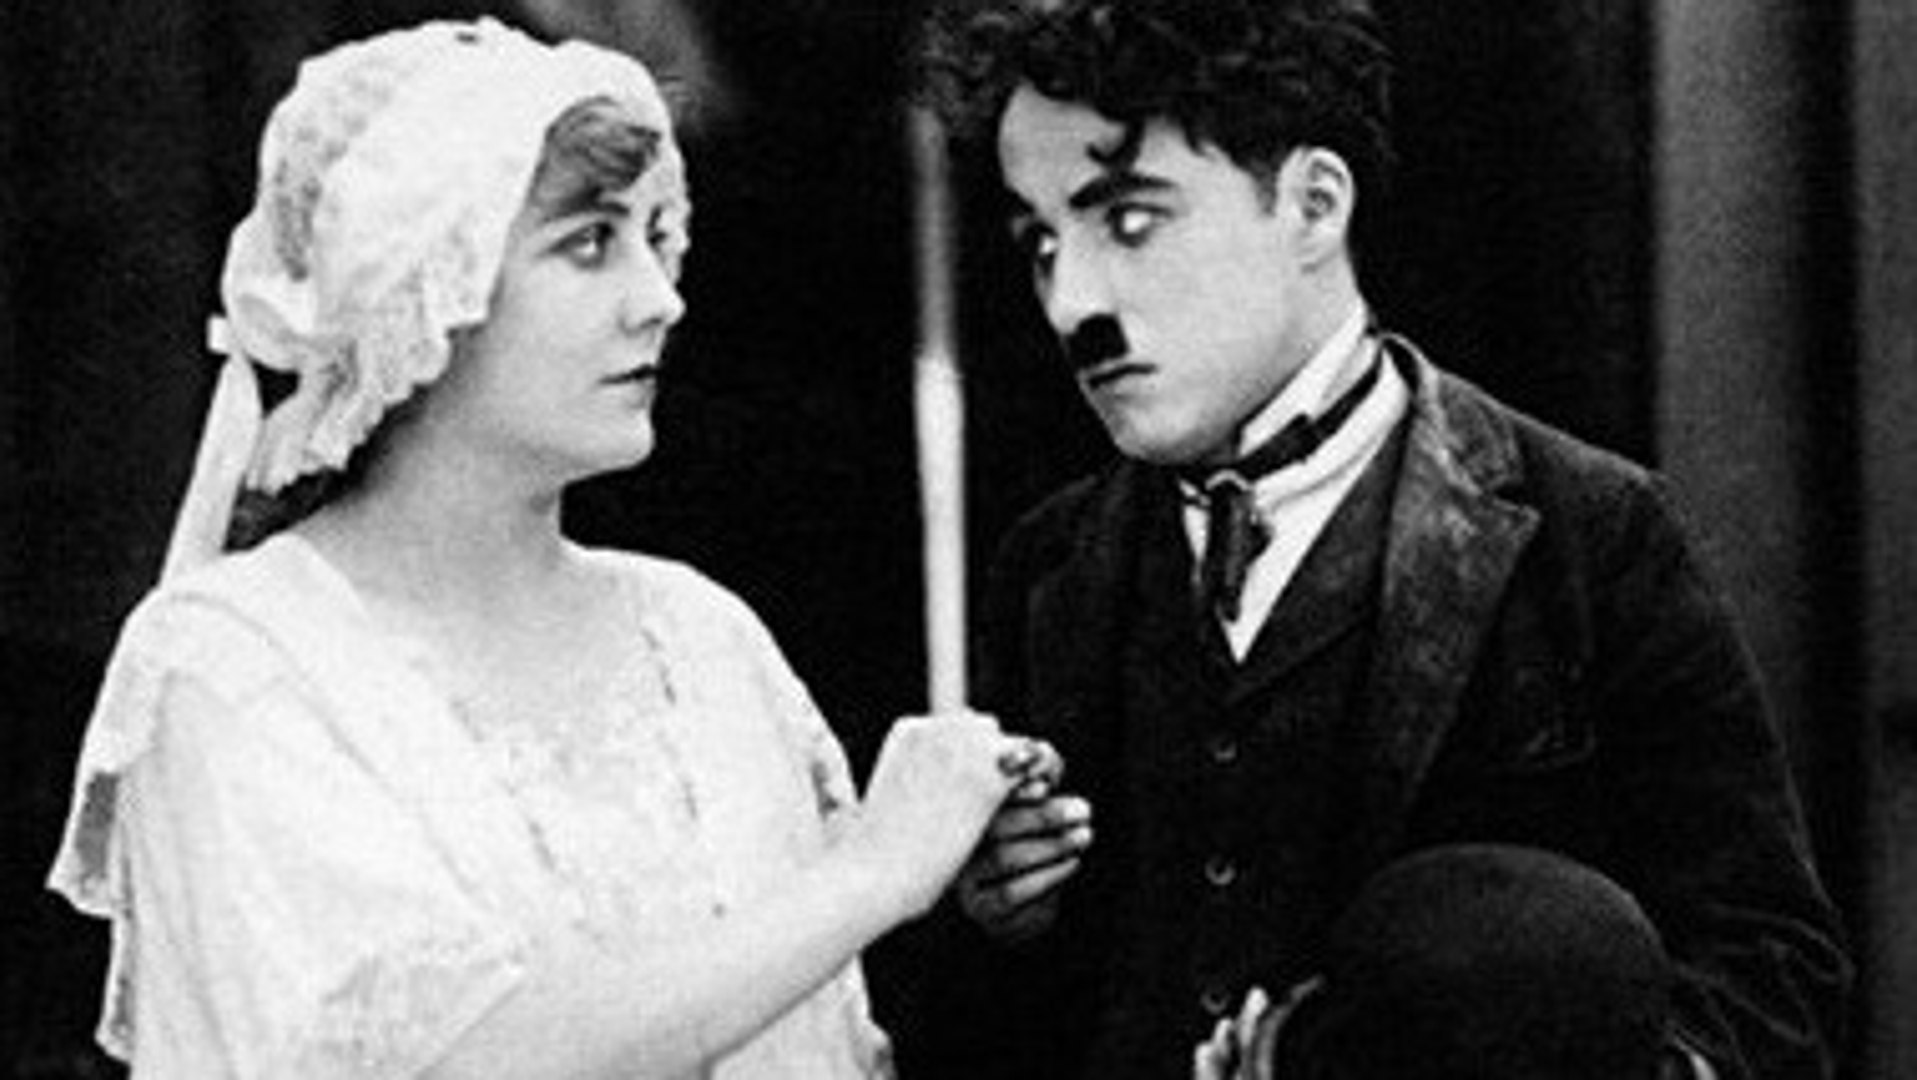 Police (1916) Charles Chaplin, Edna Purviance, Wesley Ruggles.  Comedy, Short